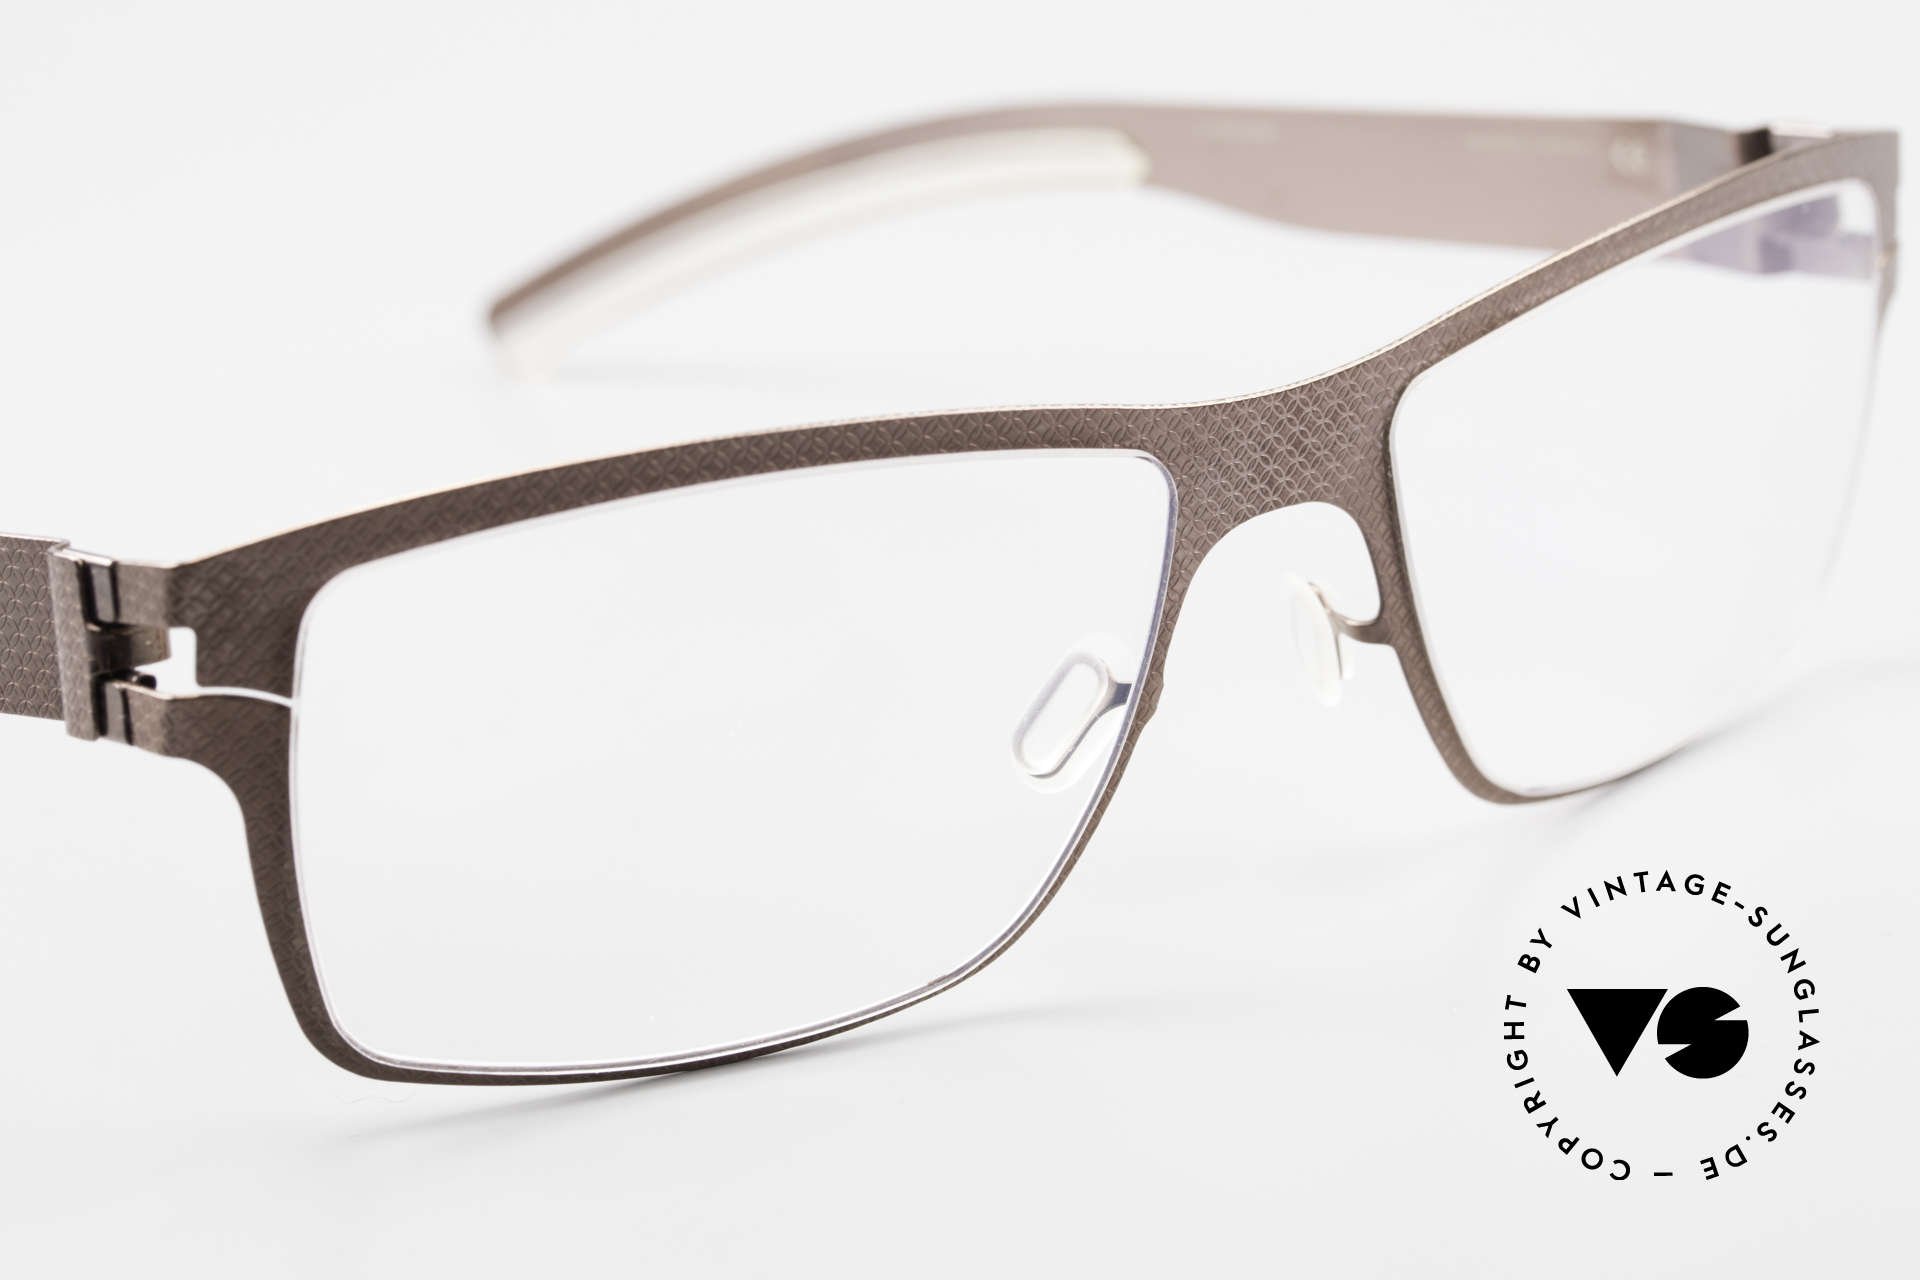 Mykita Bernhard Mykita Vintage Eyeglasses 2009, top-notch quality, made in Germany (Berlin-Kreuzberg), Made for Men